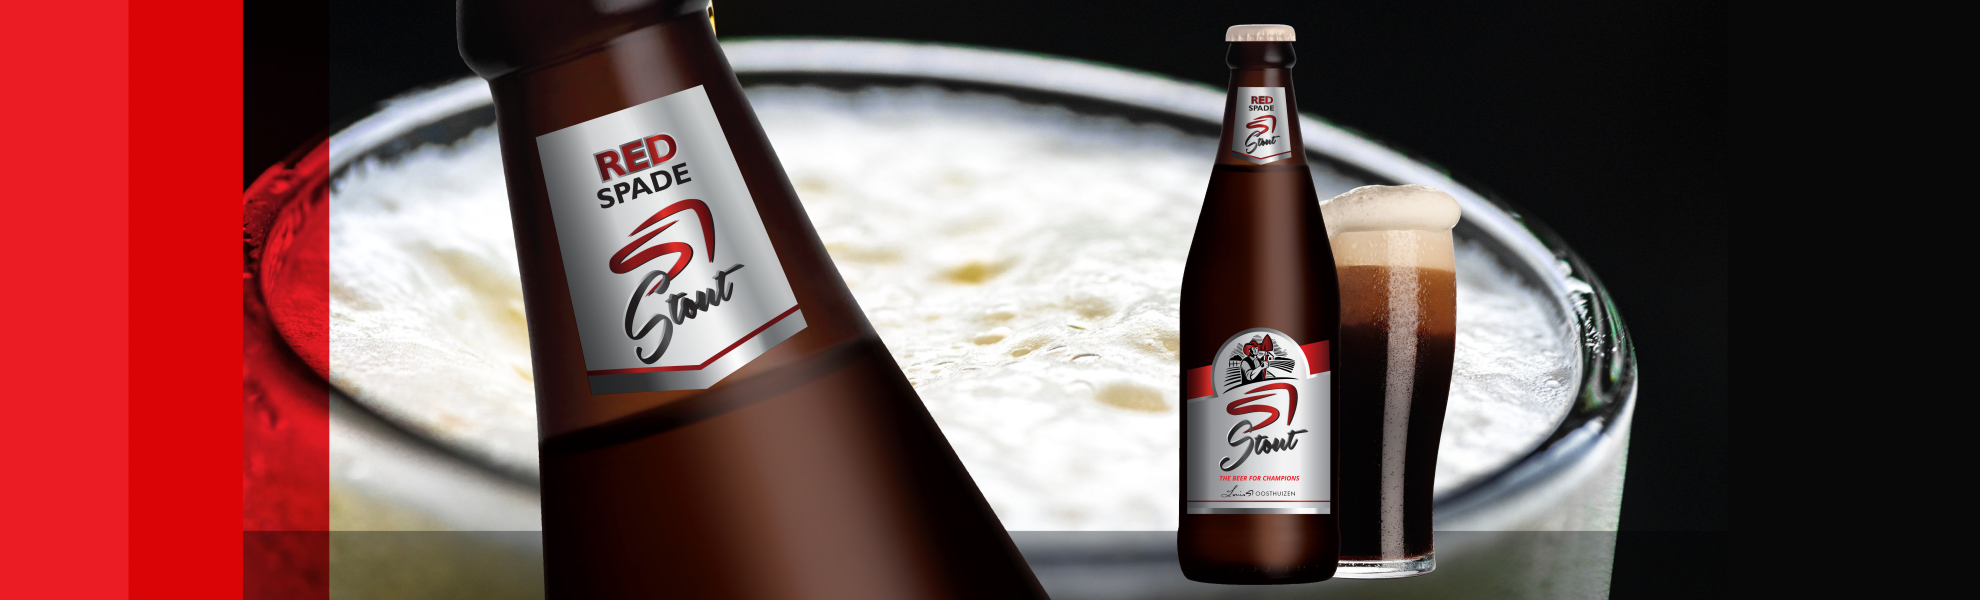 LN0008 L57 Online website elements_rotating banners_BEER_stout